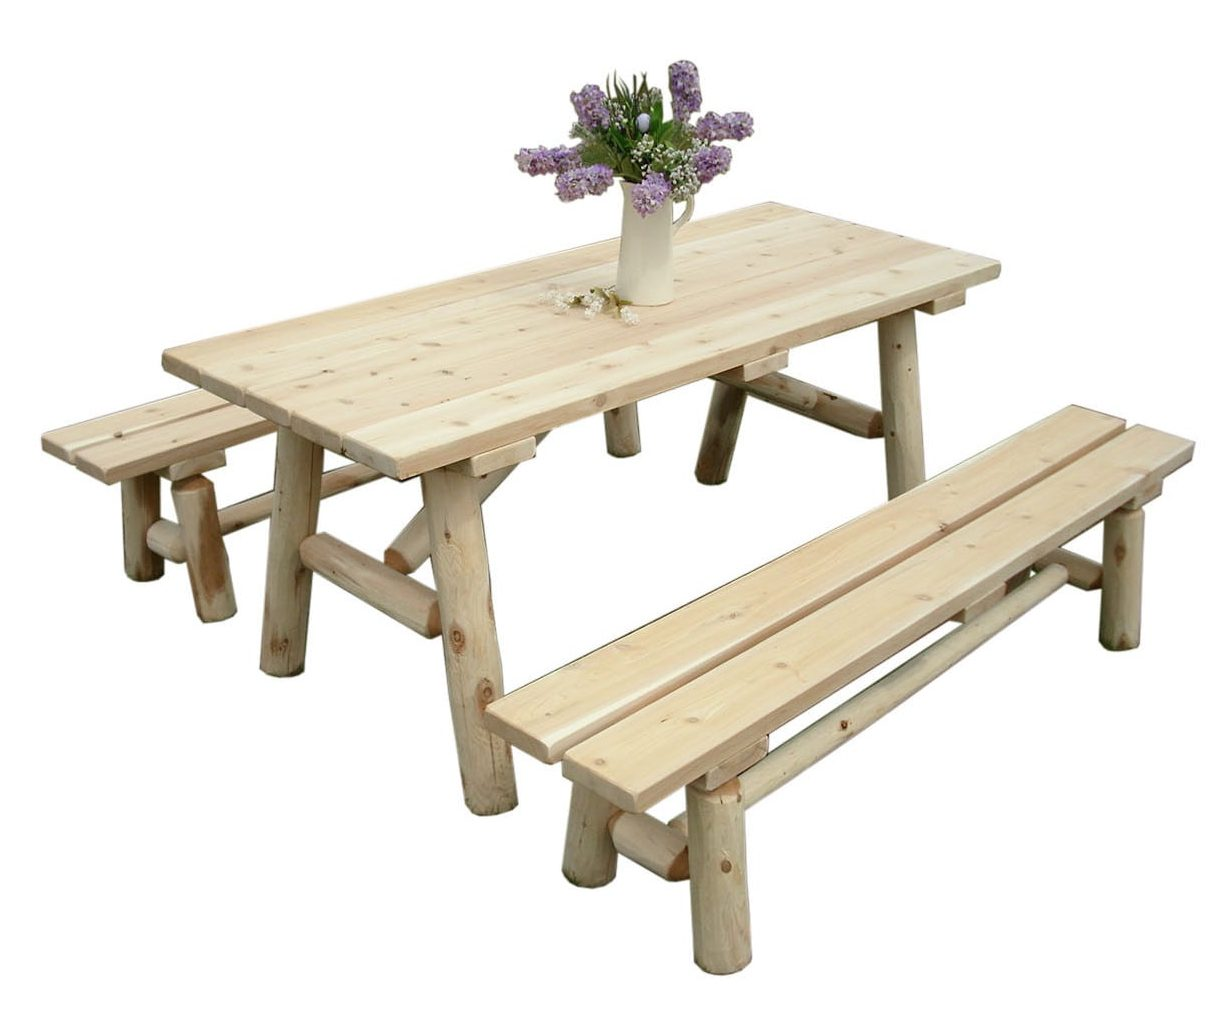 Unfinished White Cedar Log Traditional Picnic Table With Detached Benches